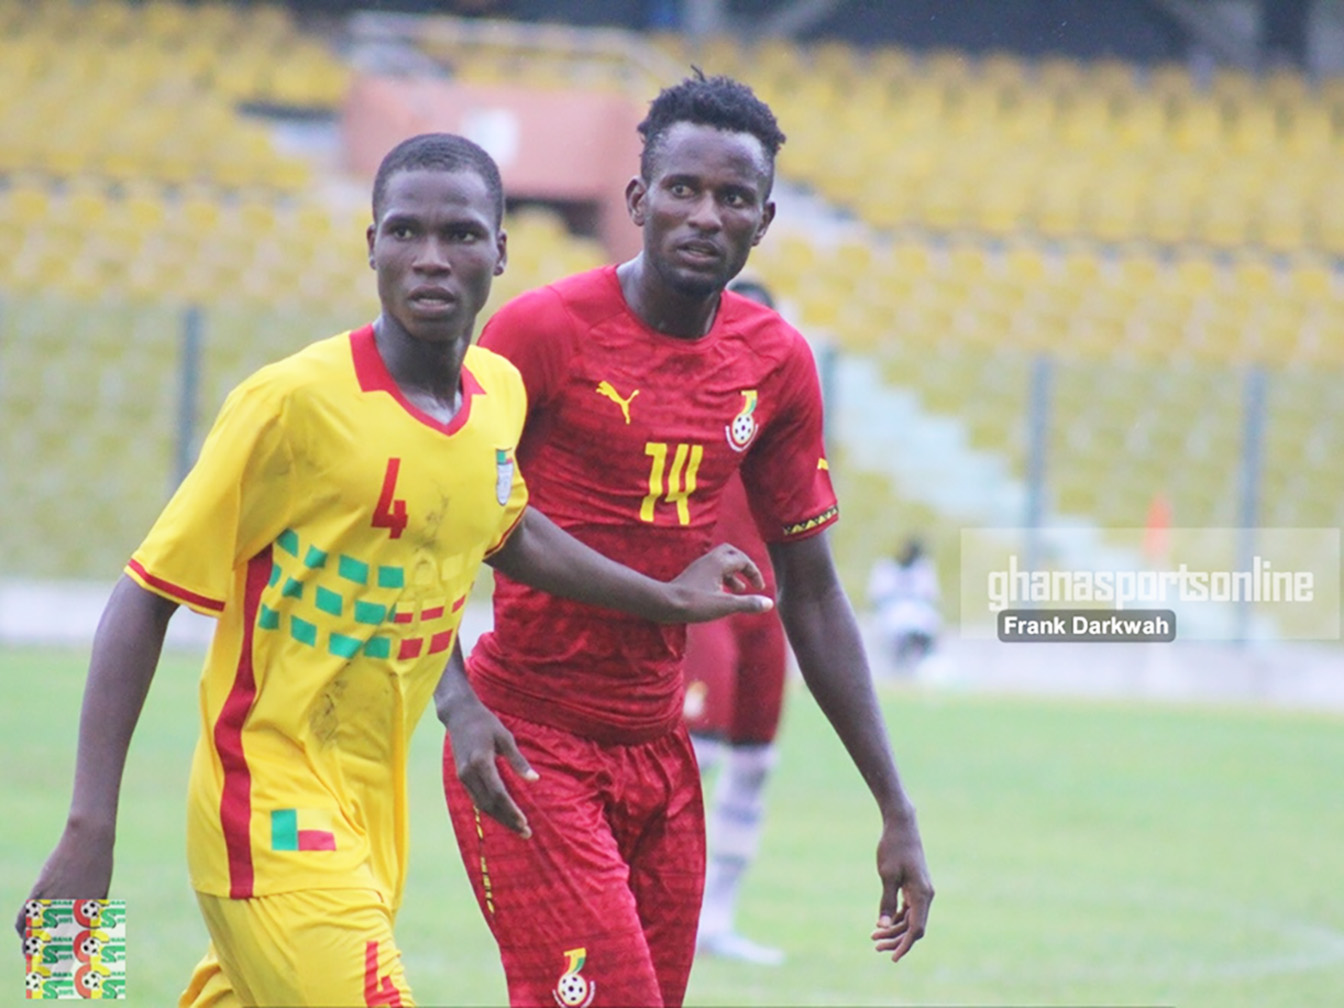 LMC urges CHAN Eagles to build on gains of WAFU experience